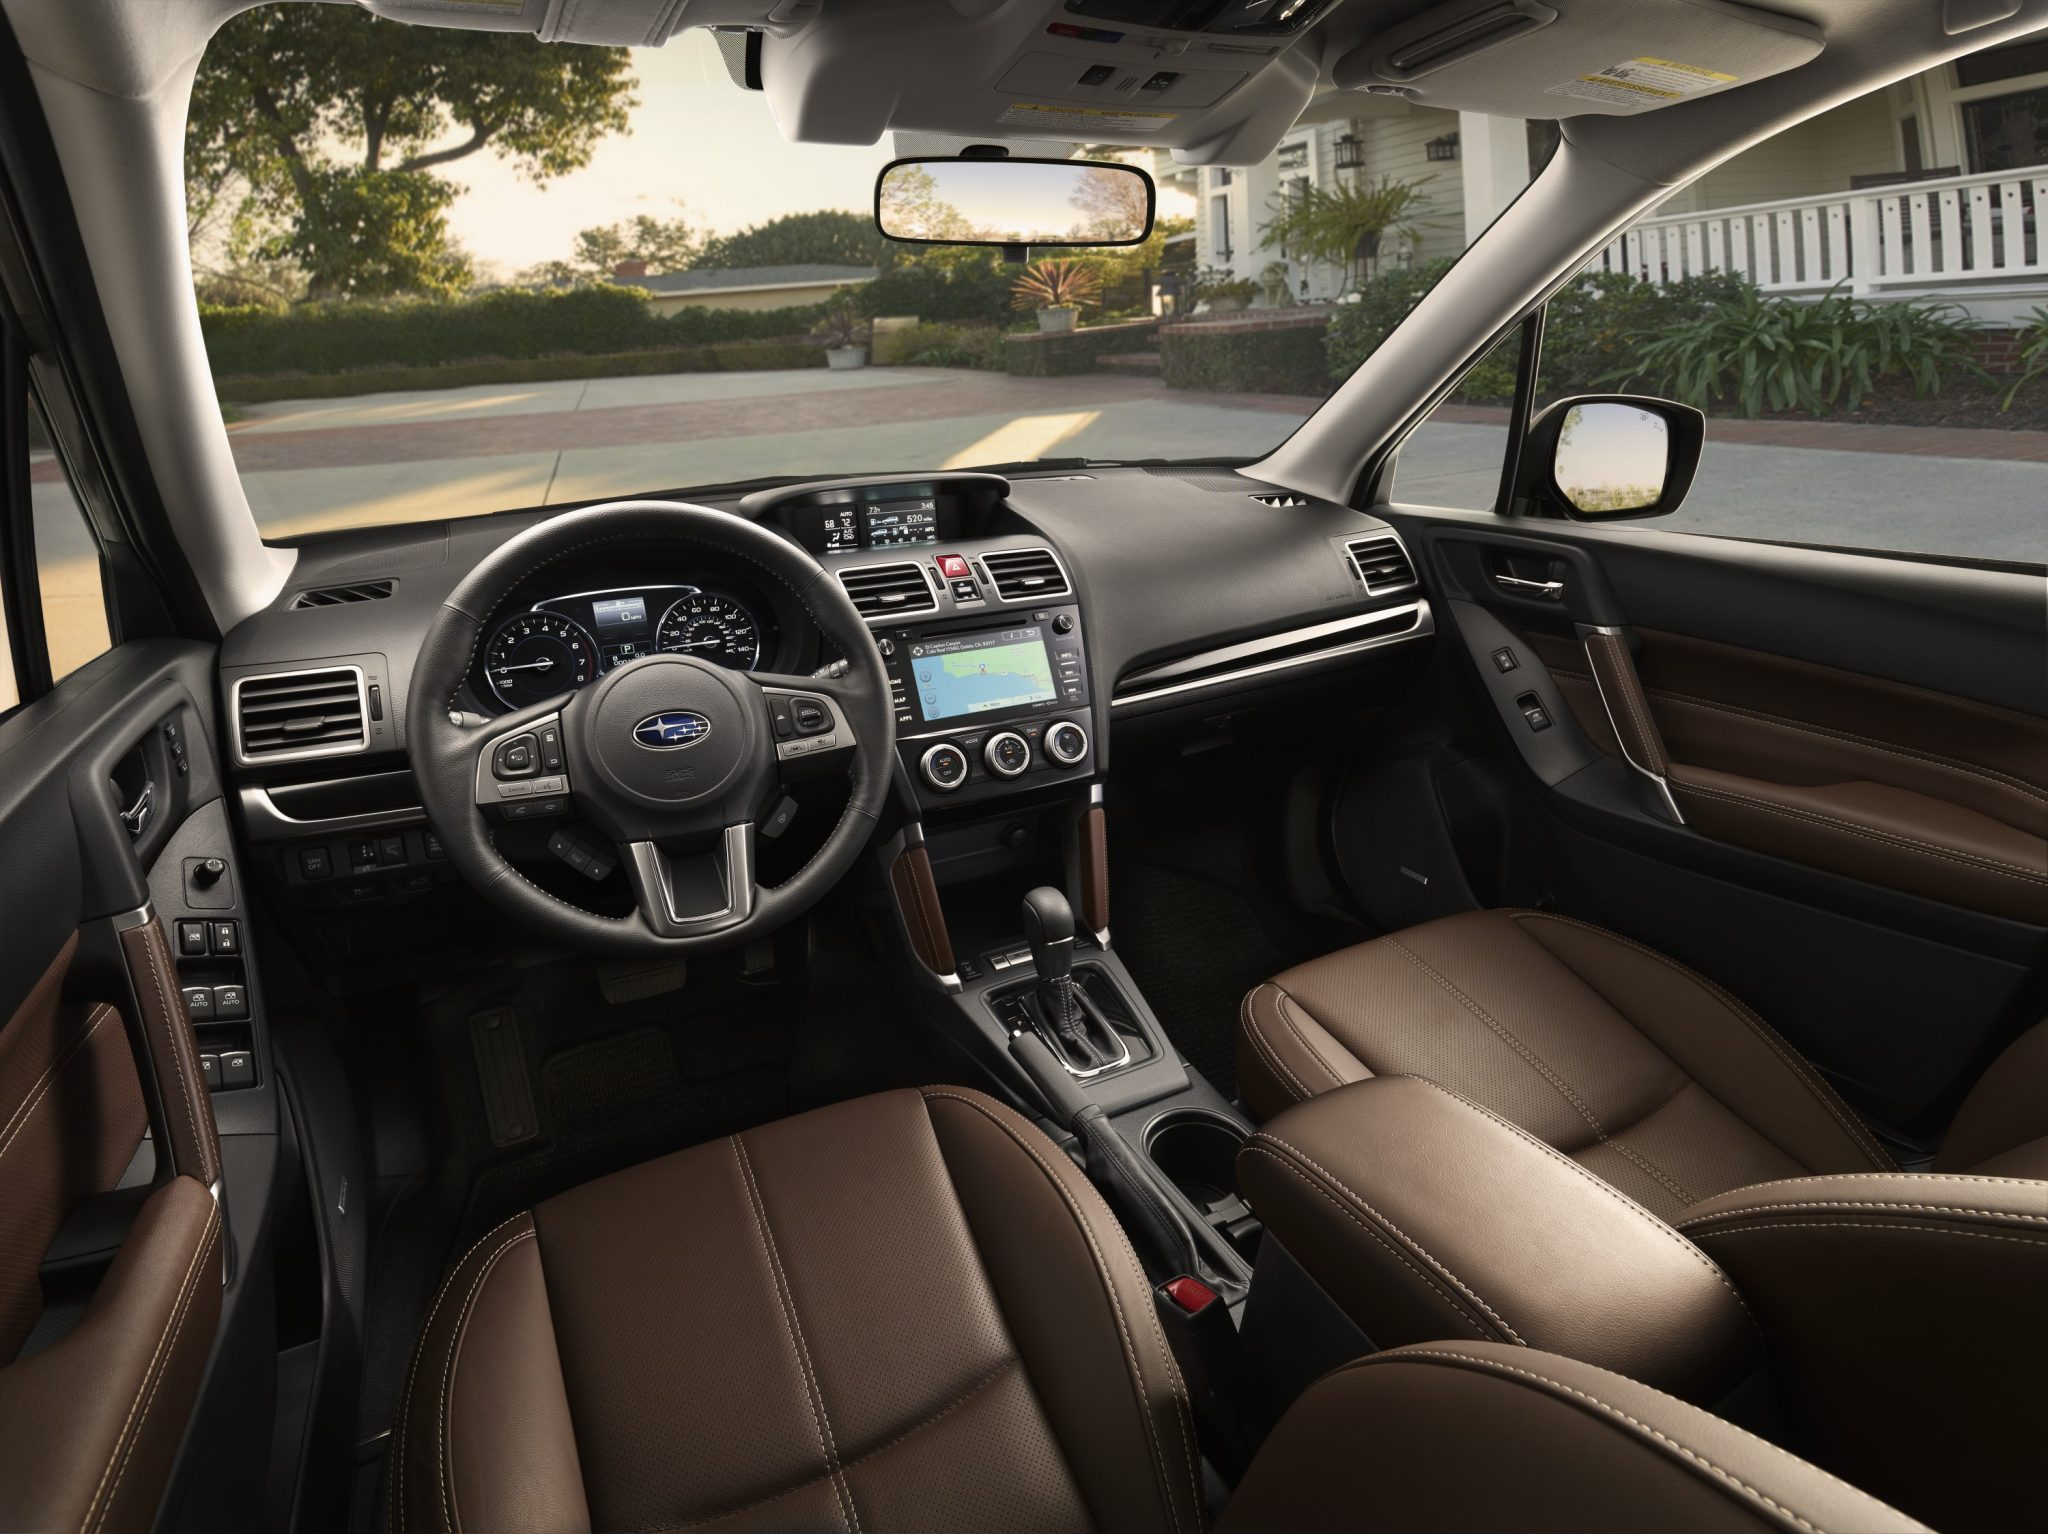 2017 subaru forester gets mild updates inside and out 5656 vanachro Gallery